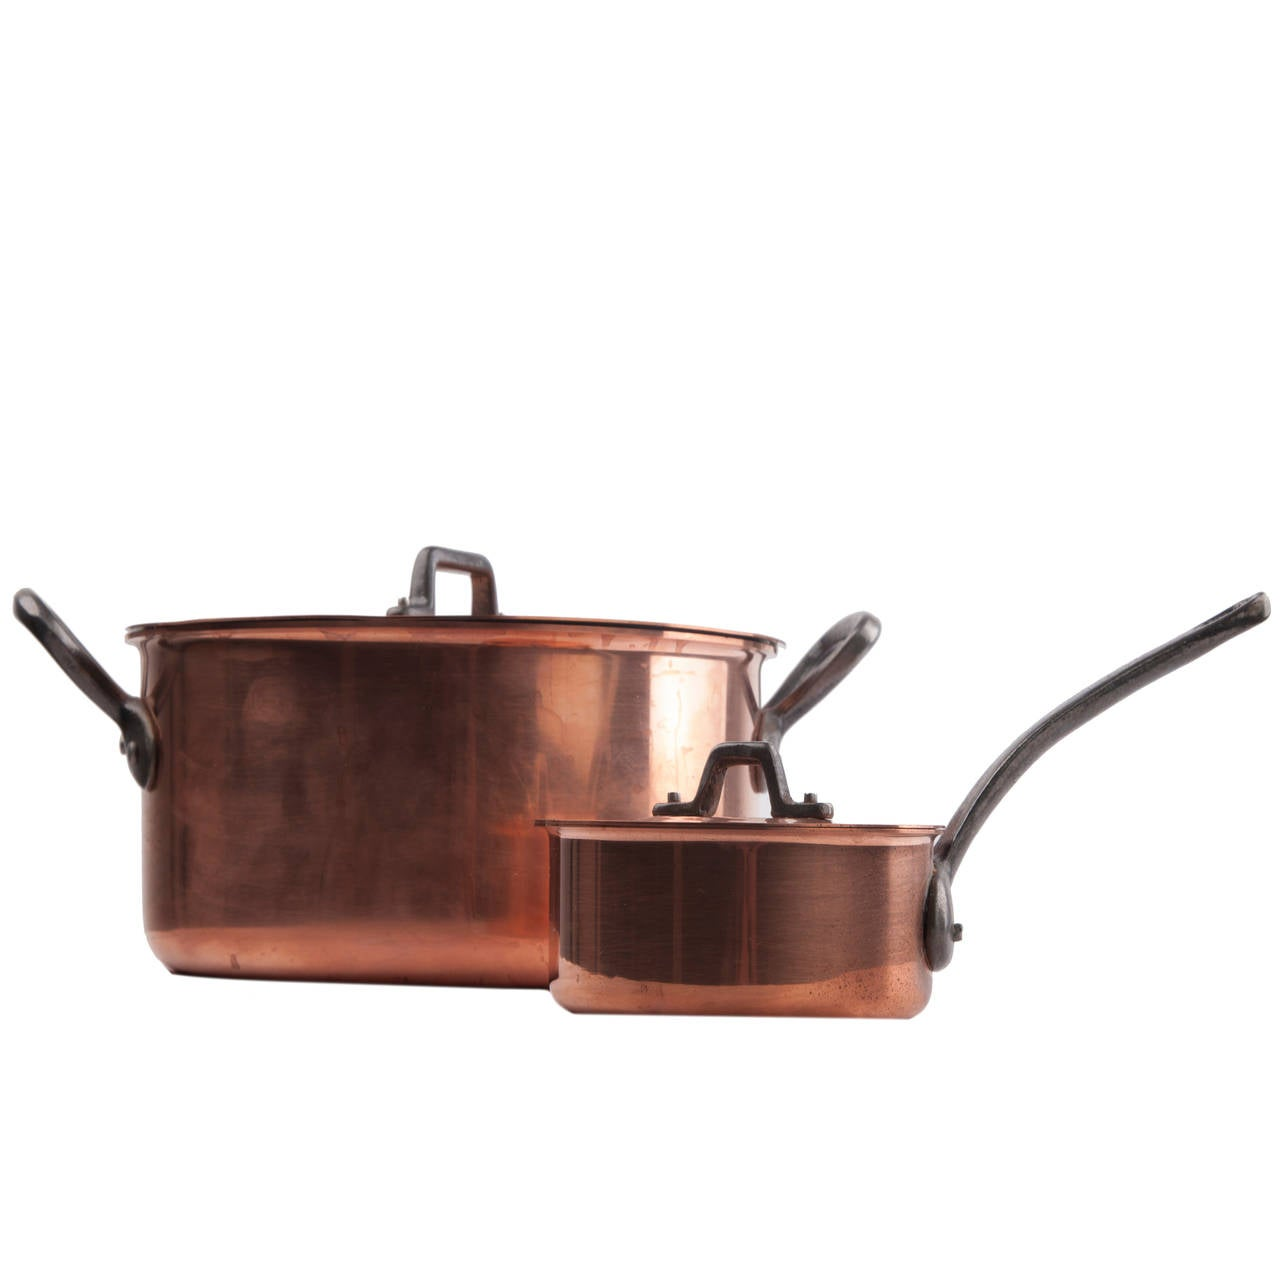 Baumalu copper pots